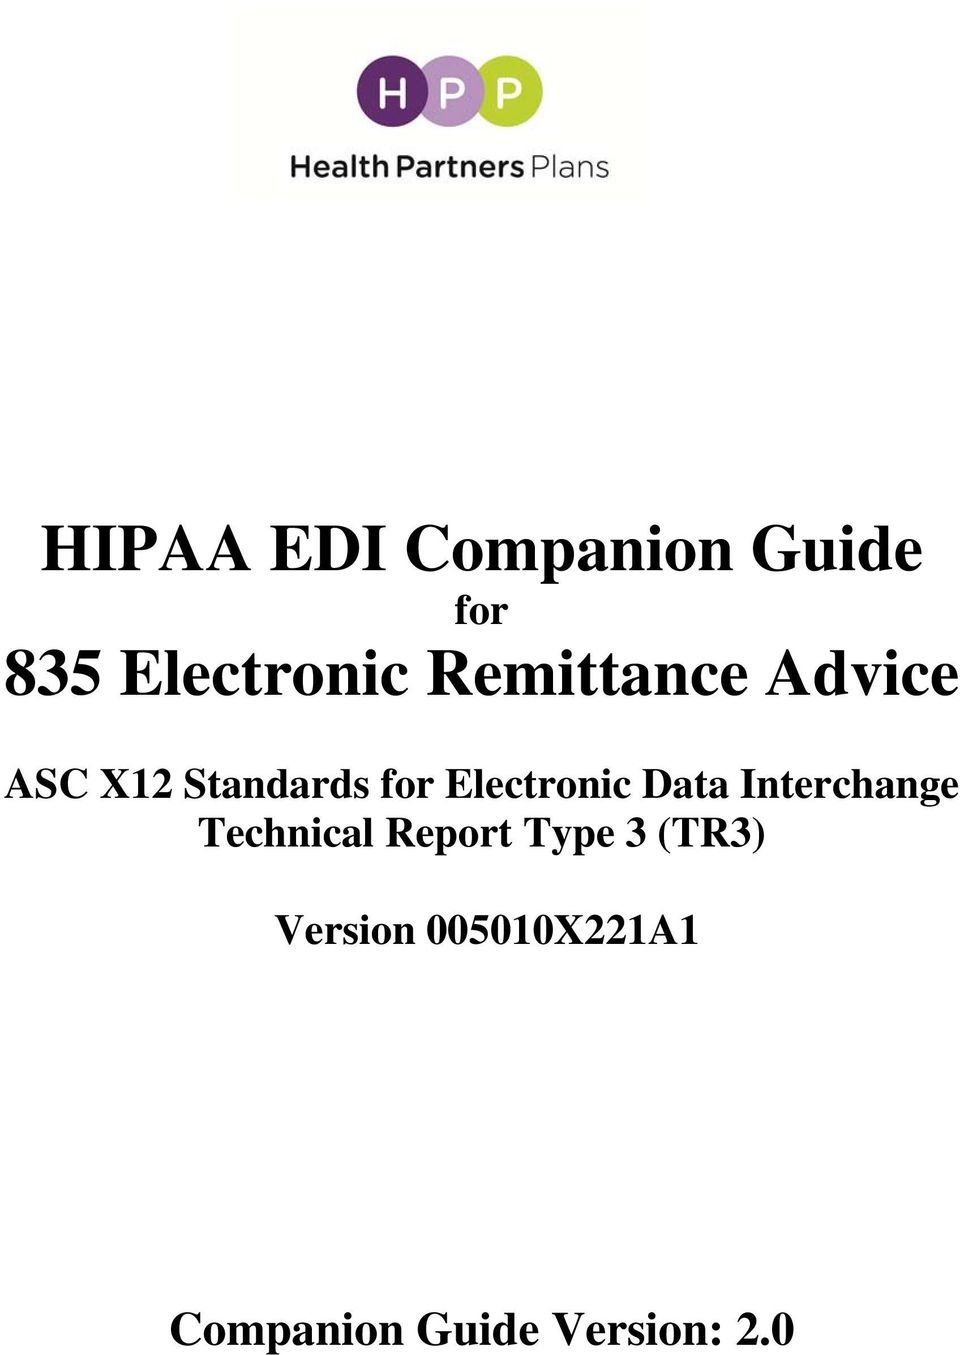 HIPAA EDI Companion Guide for 835 Electronic Remittance